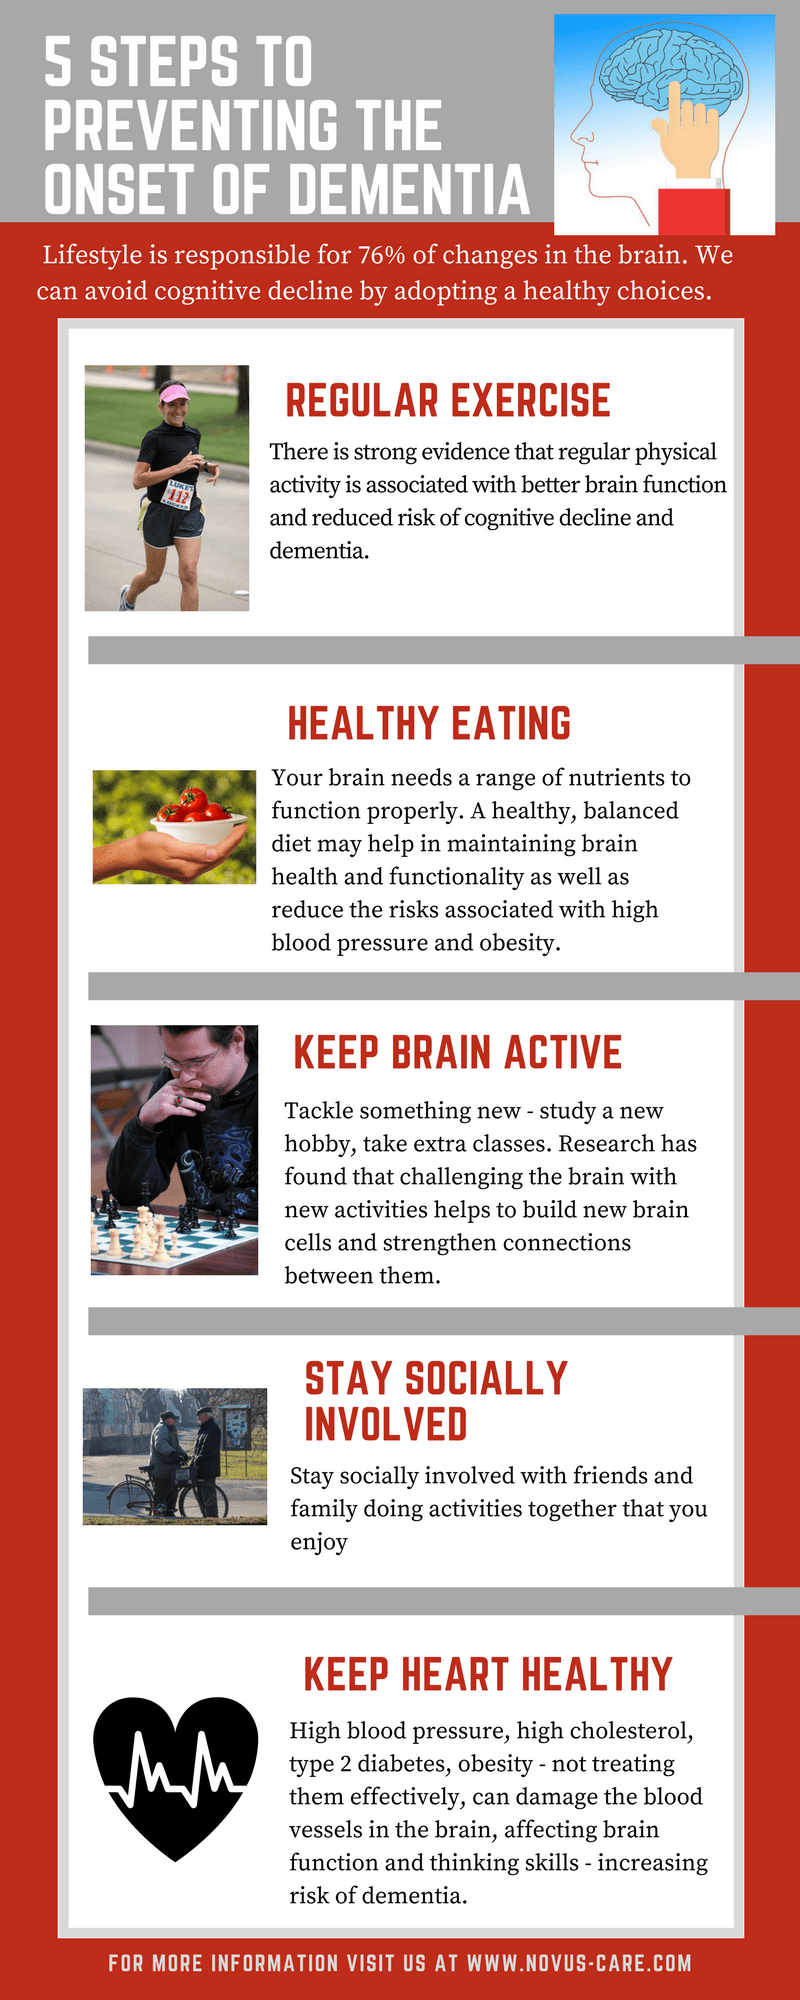 Infographic on how we can prevent cognitive decline and onset of dementia